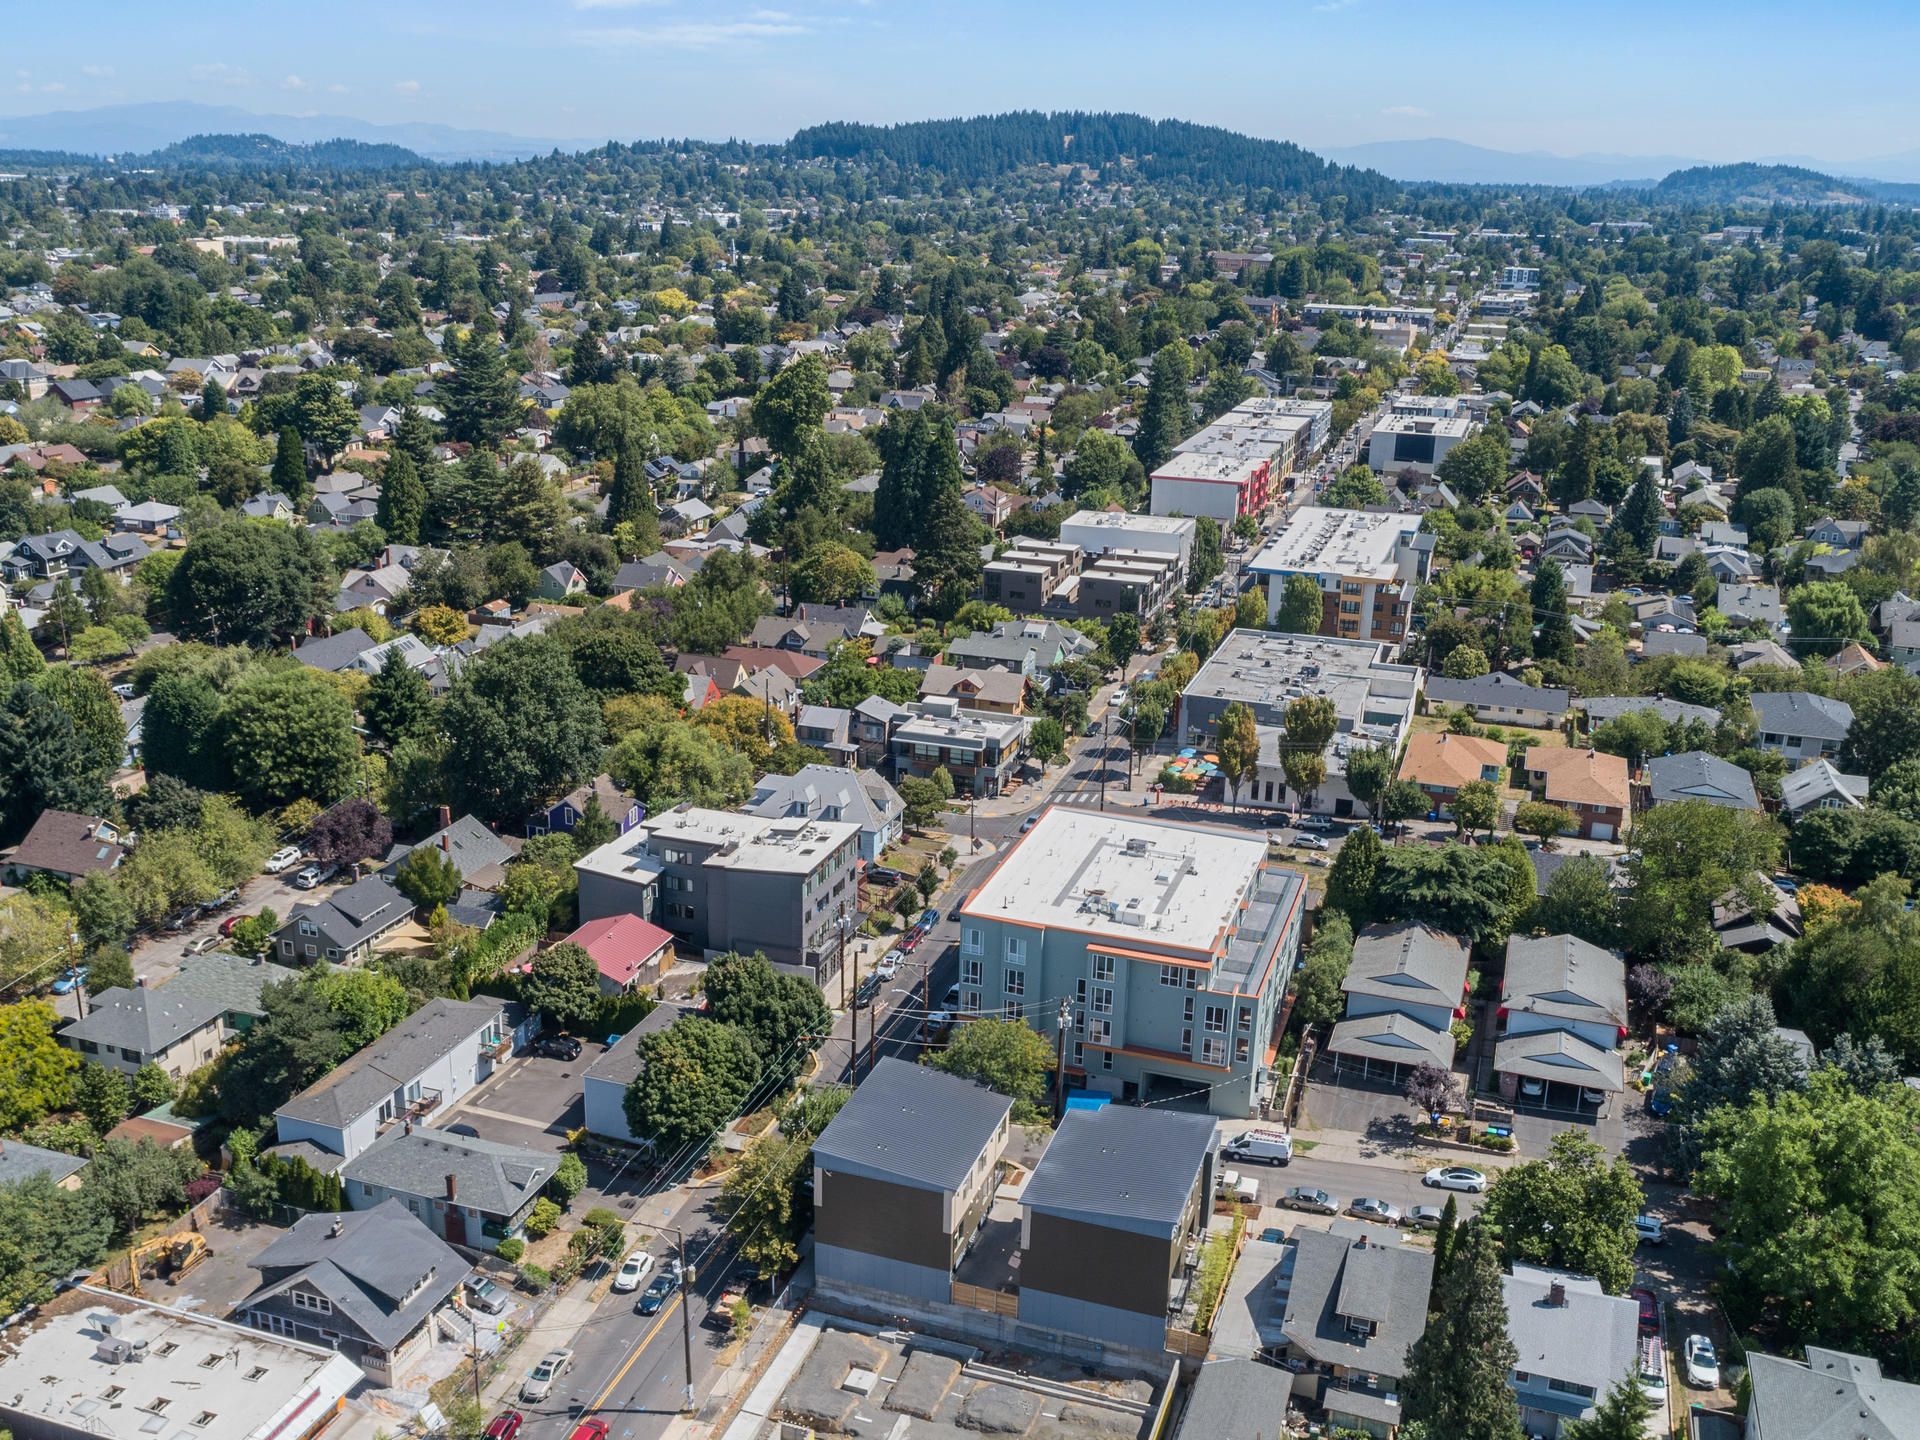 2911 SE Division St Portland-041-001-Aerial View-MLS_Size.jpg